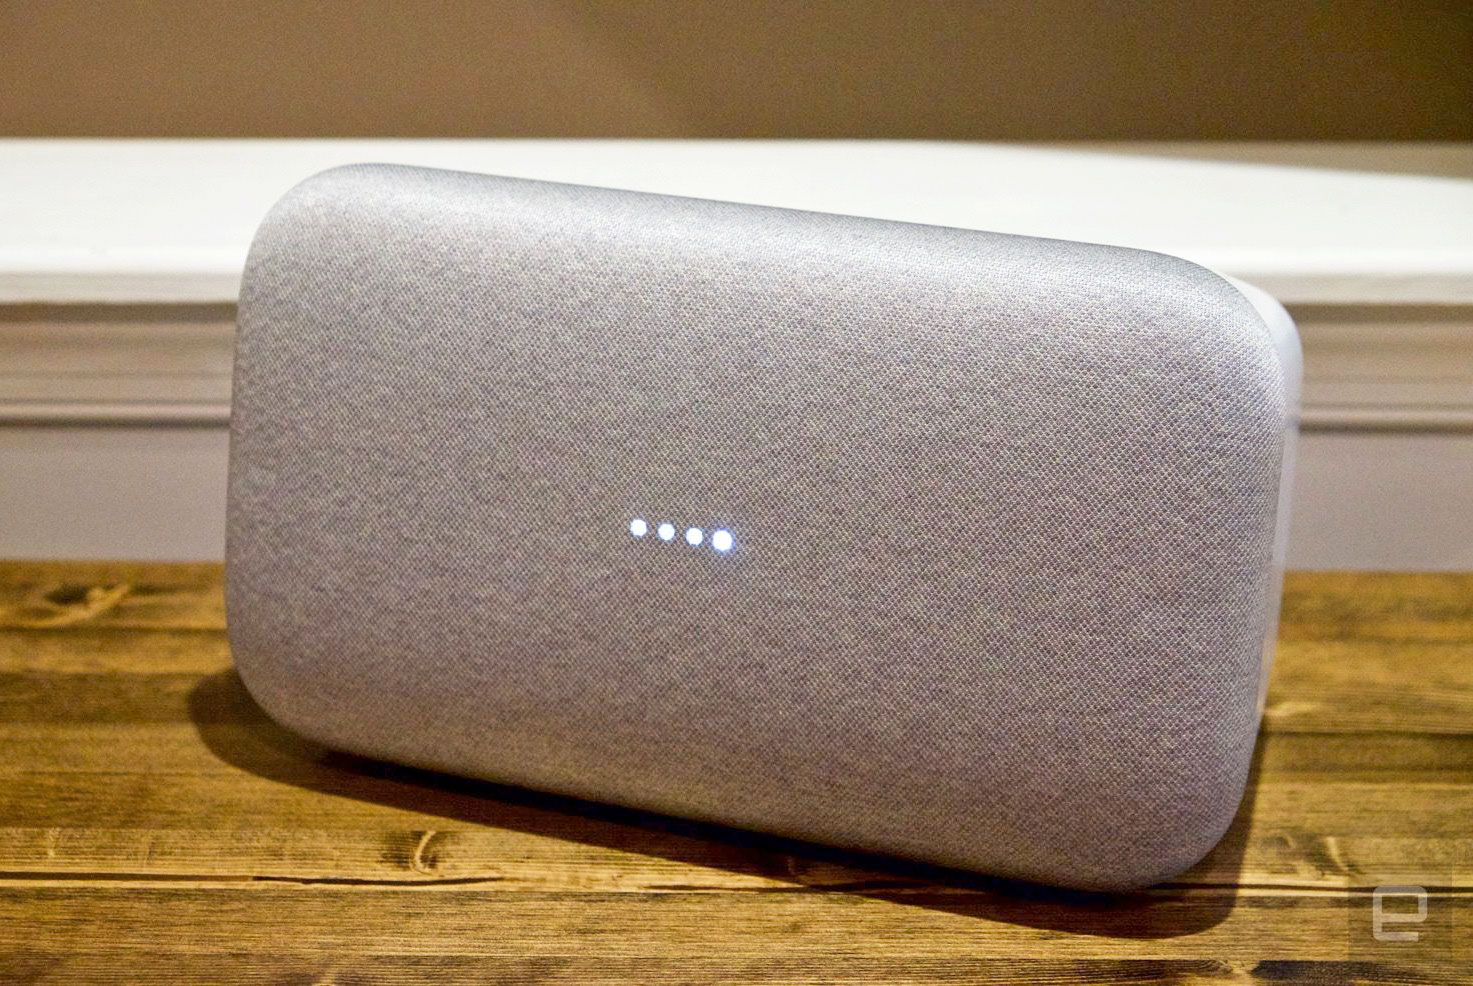 Google Home Max review: An assistant for music lovers